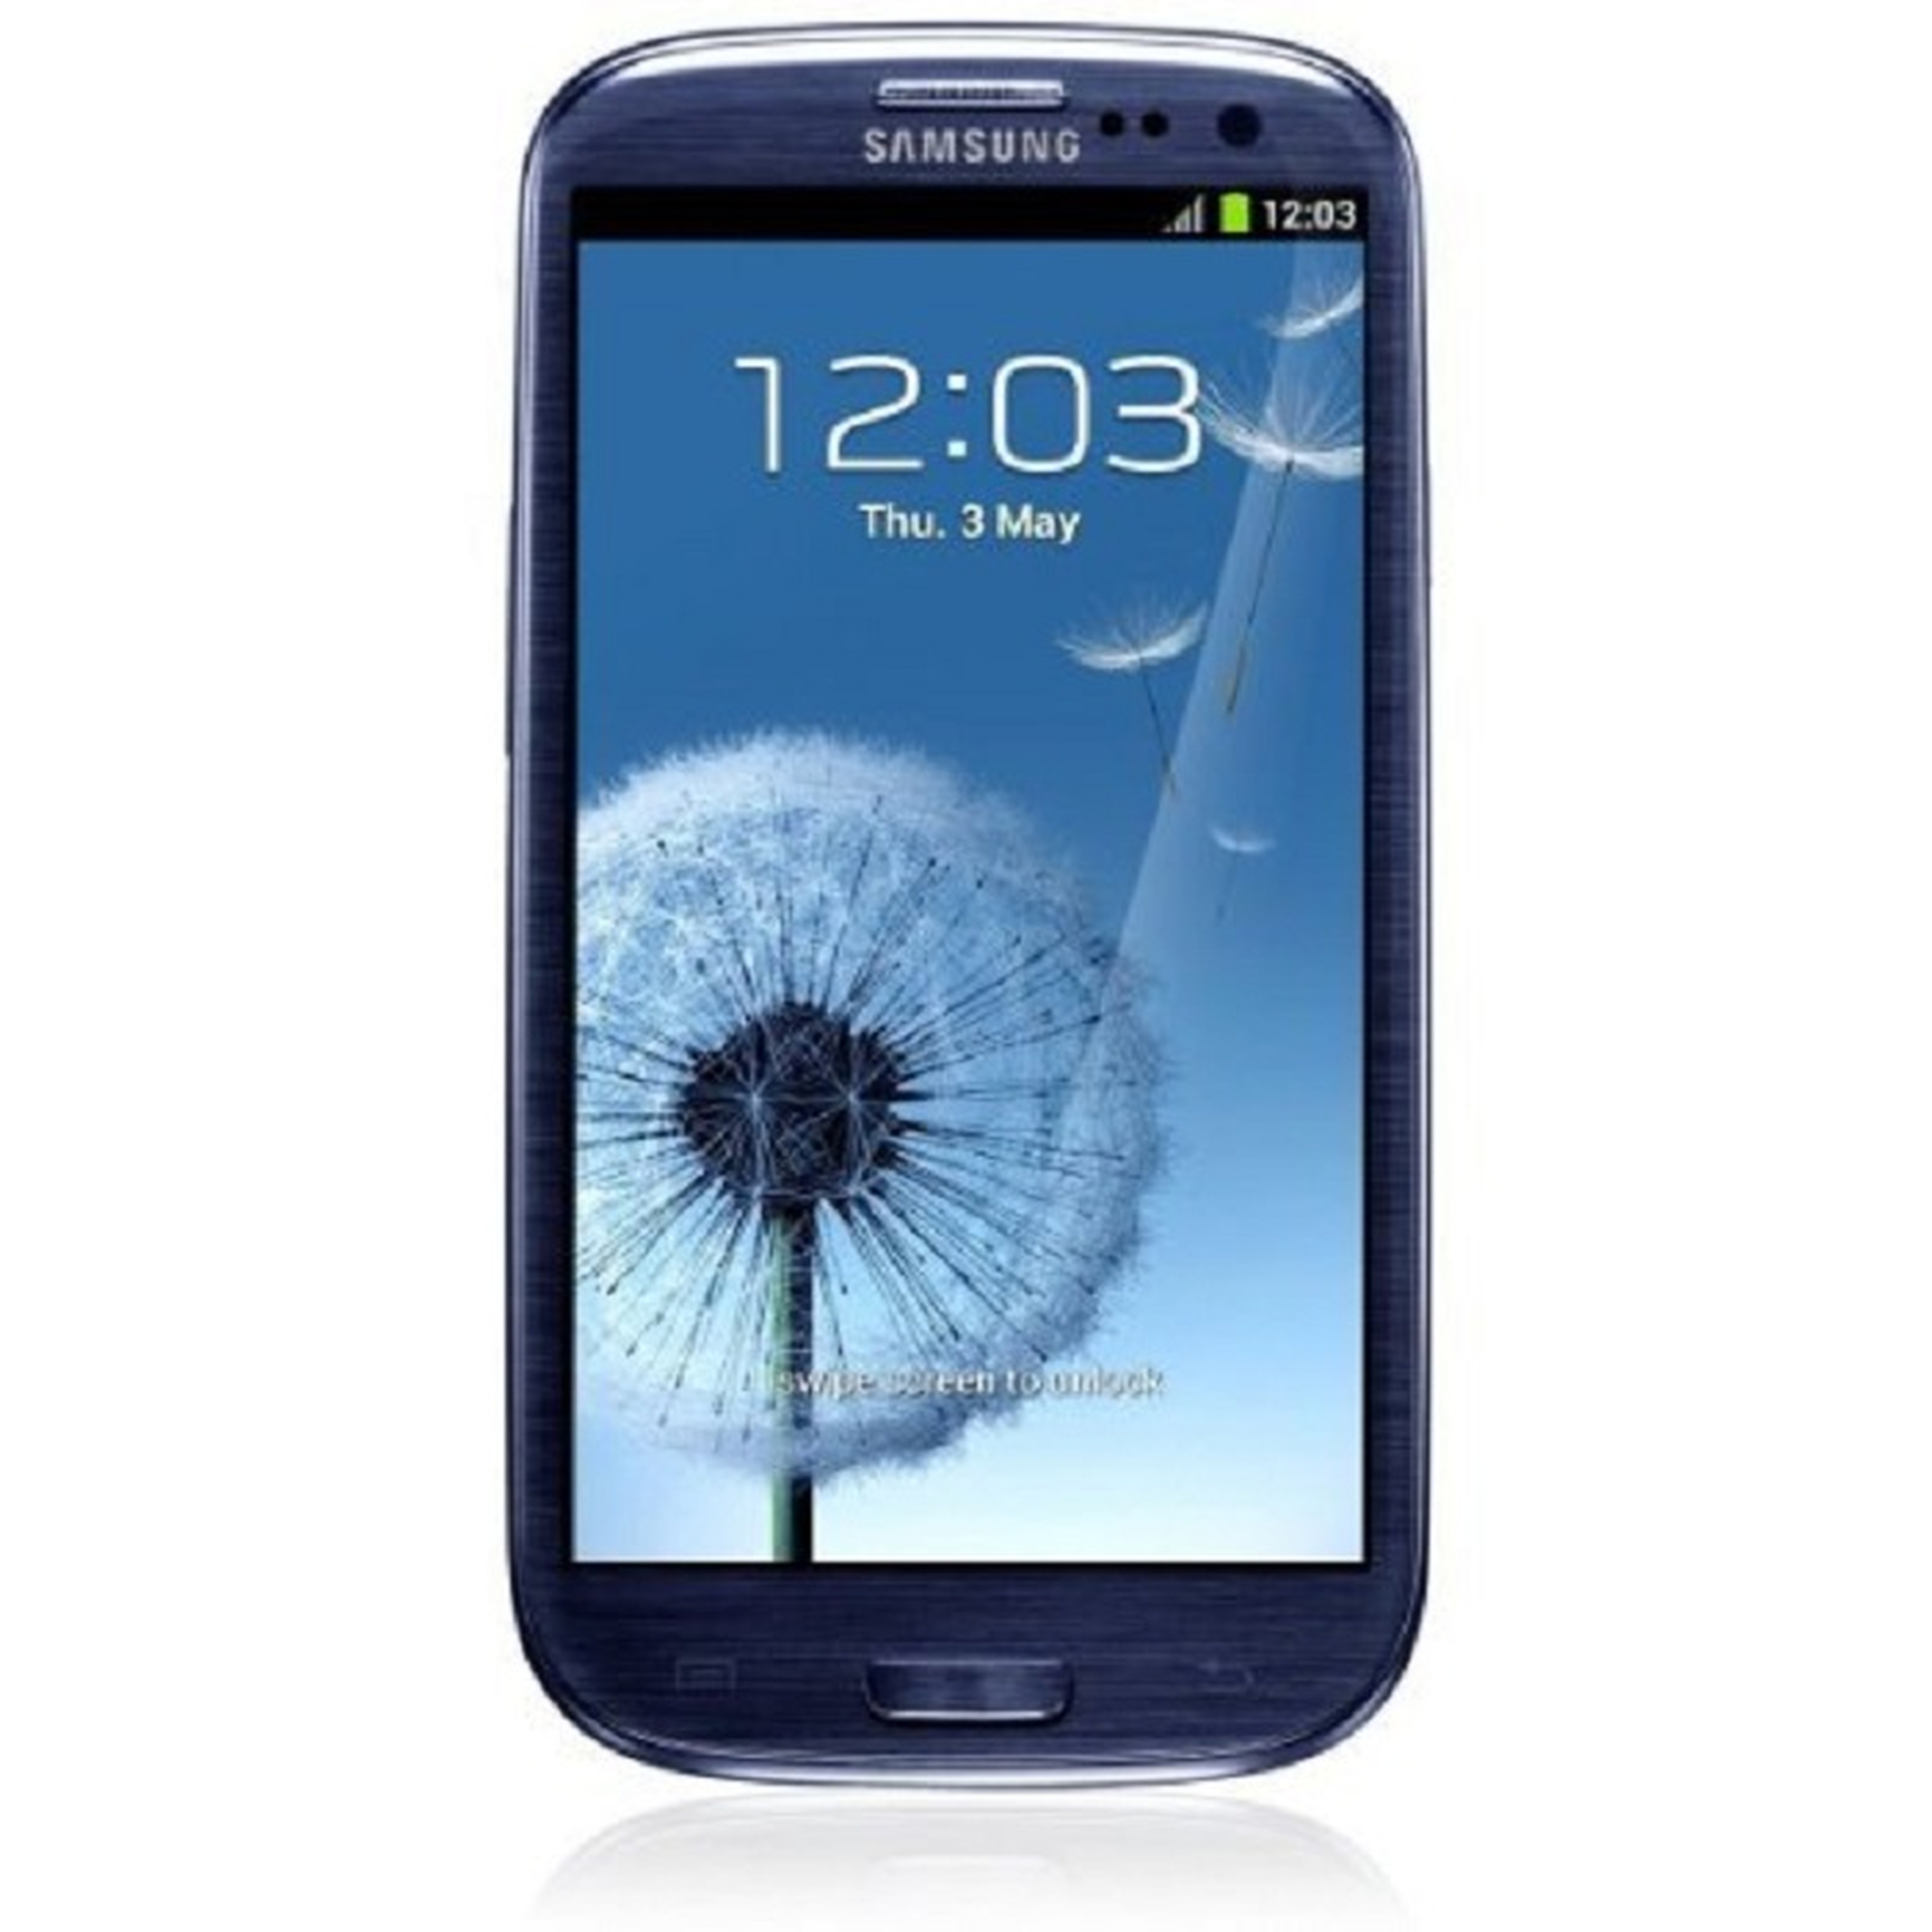 Samsung Galaxy S III i9300 Smartphone 16GB pebble-blue gebraucht - gut